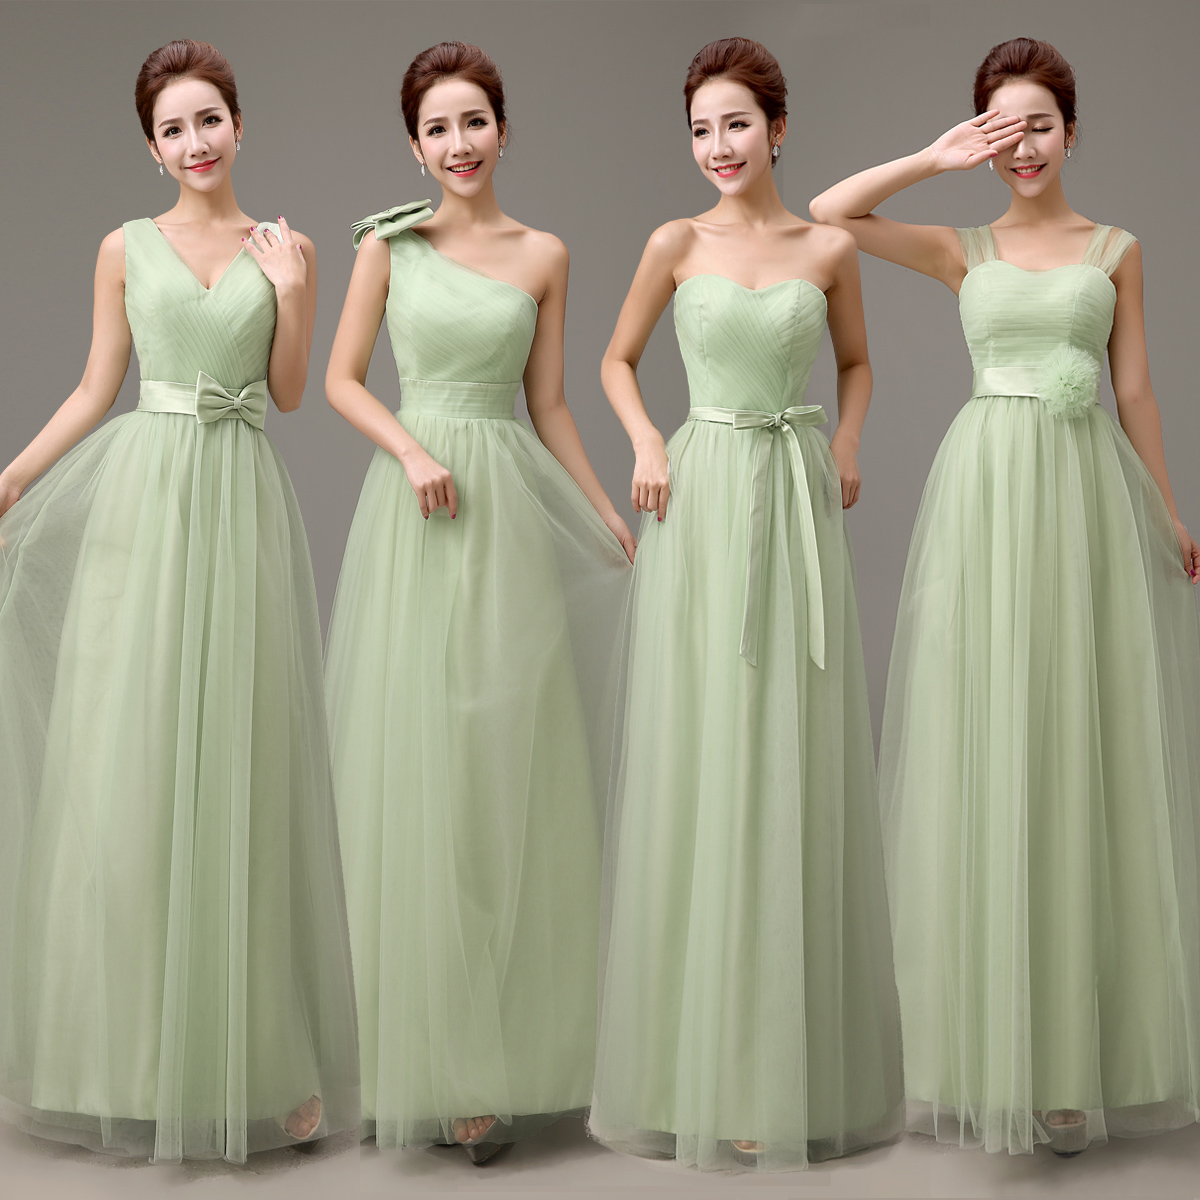 Jcstar 2017 v neck straps tulle long mint green bridesmaid jcstar 2017 v neck straps tulle long mint green bridesmaid dresses wedding party dress cheap bridesmaid dresses under 50 in bridesmaid dresses from ombrellifo Choice Image